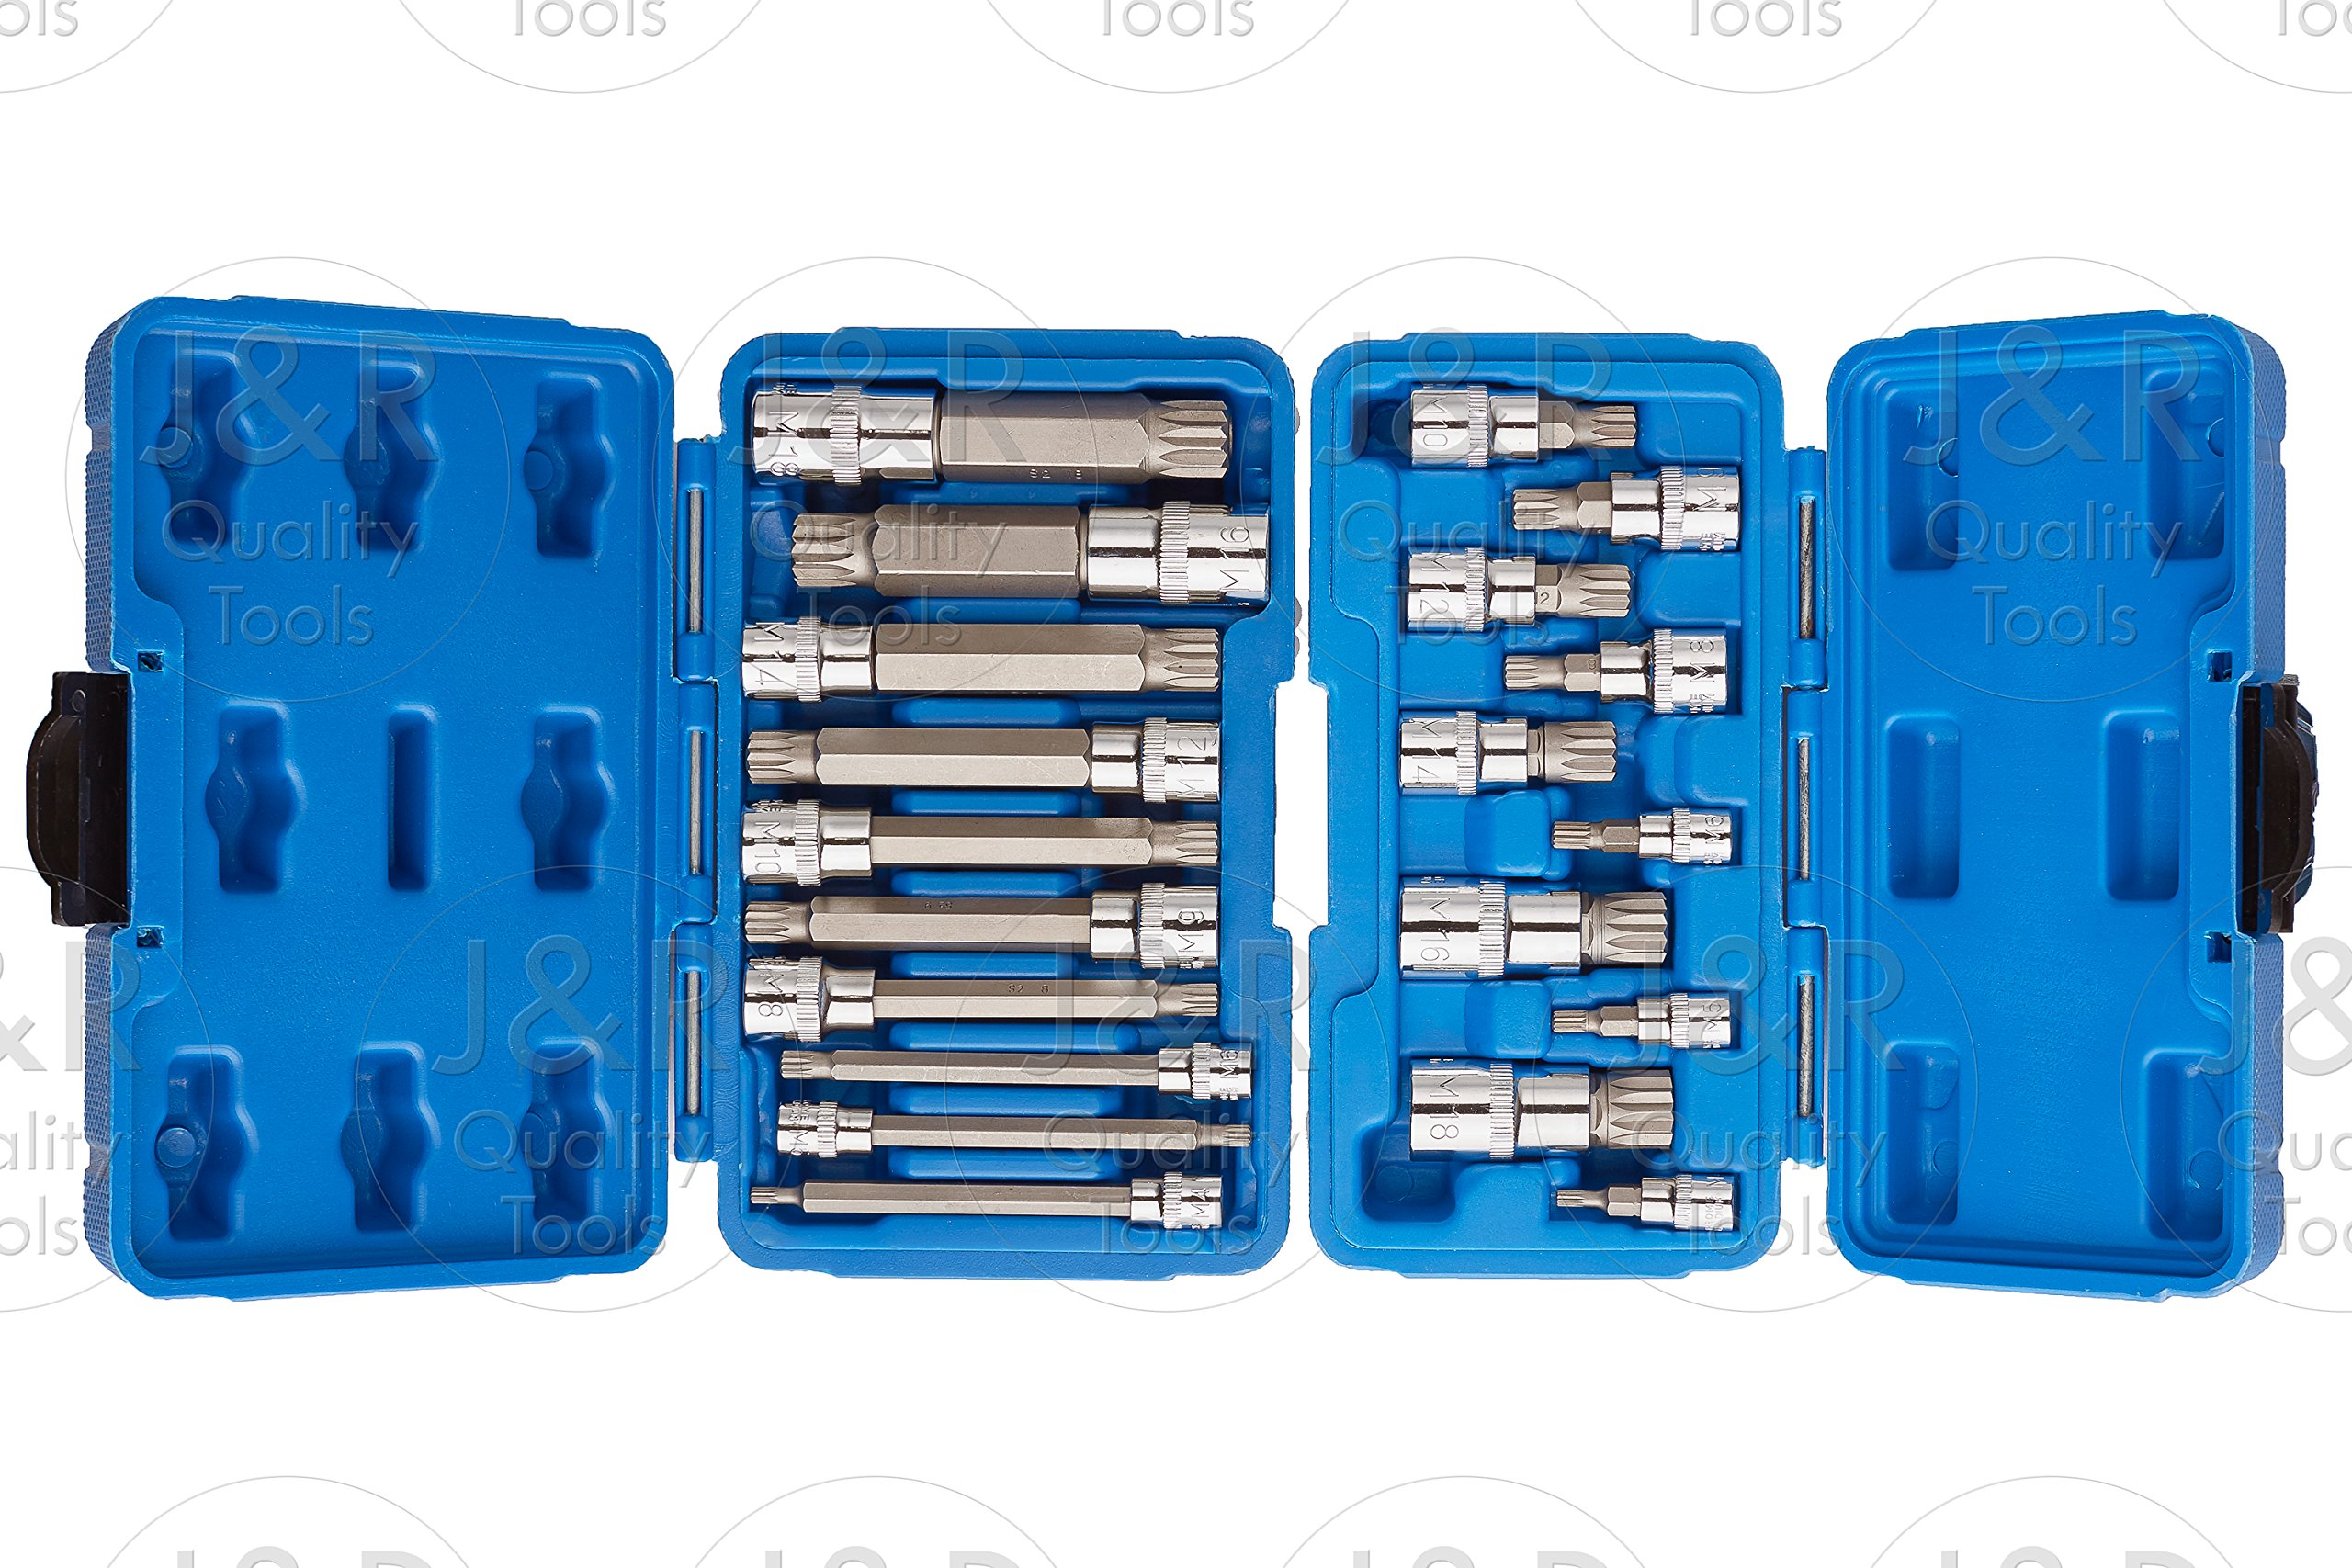 J&R Quality Tools 20pc XZN 12 Point MM Triple Square Spline Bit Socket Set Tamper Proof Set by VECTOR